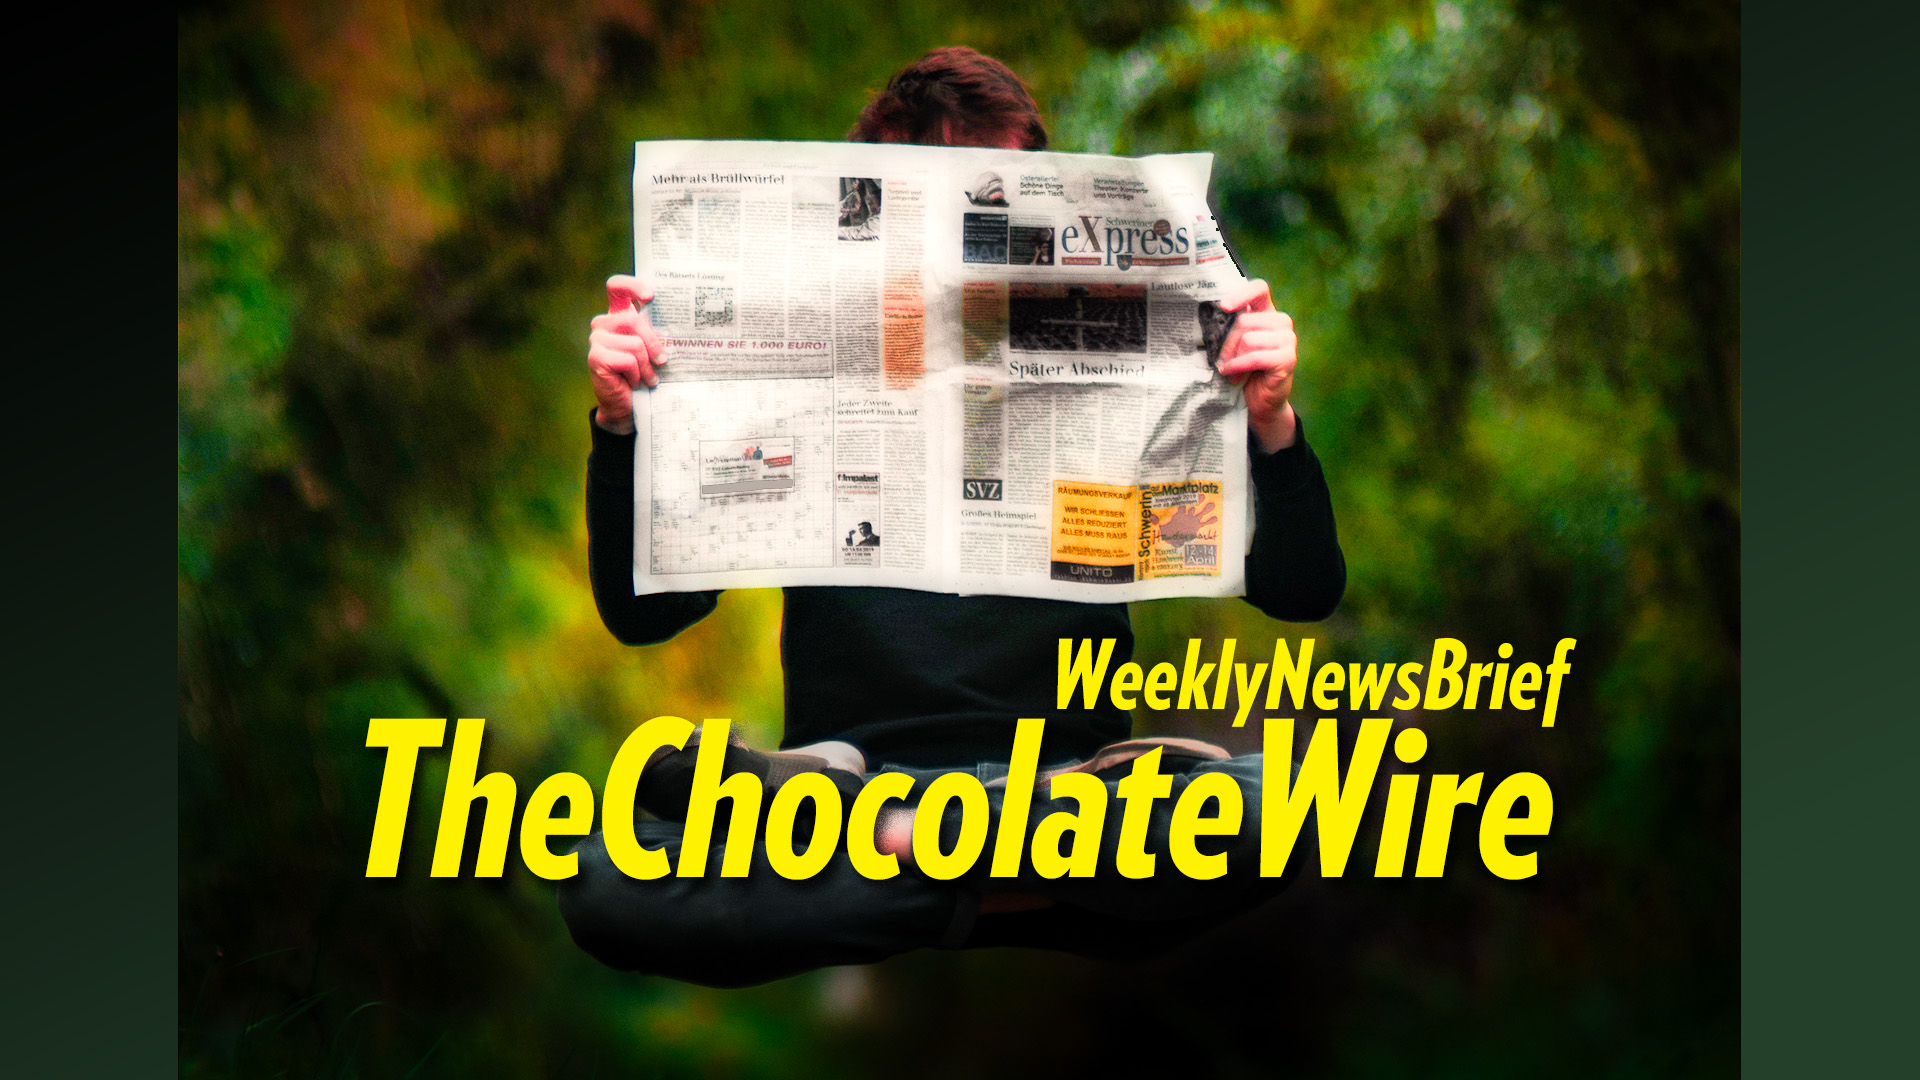 TheChocolateWire Weekly NewsBrief for July 3, 2020